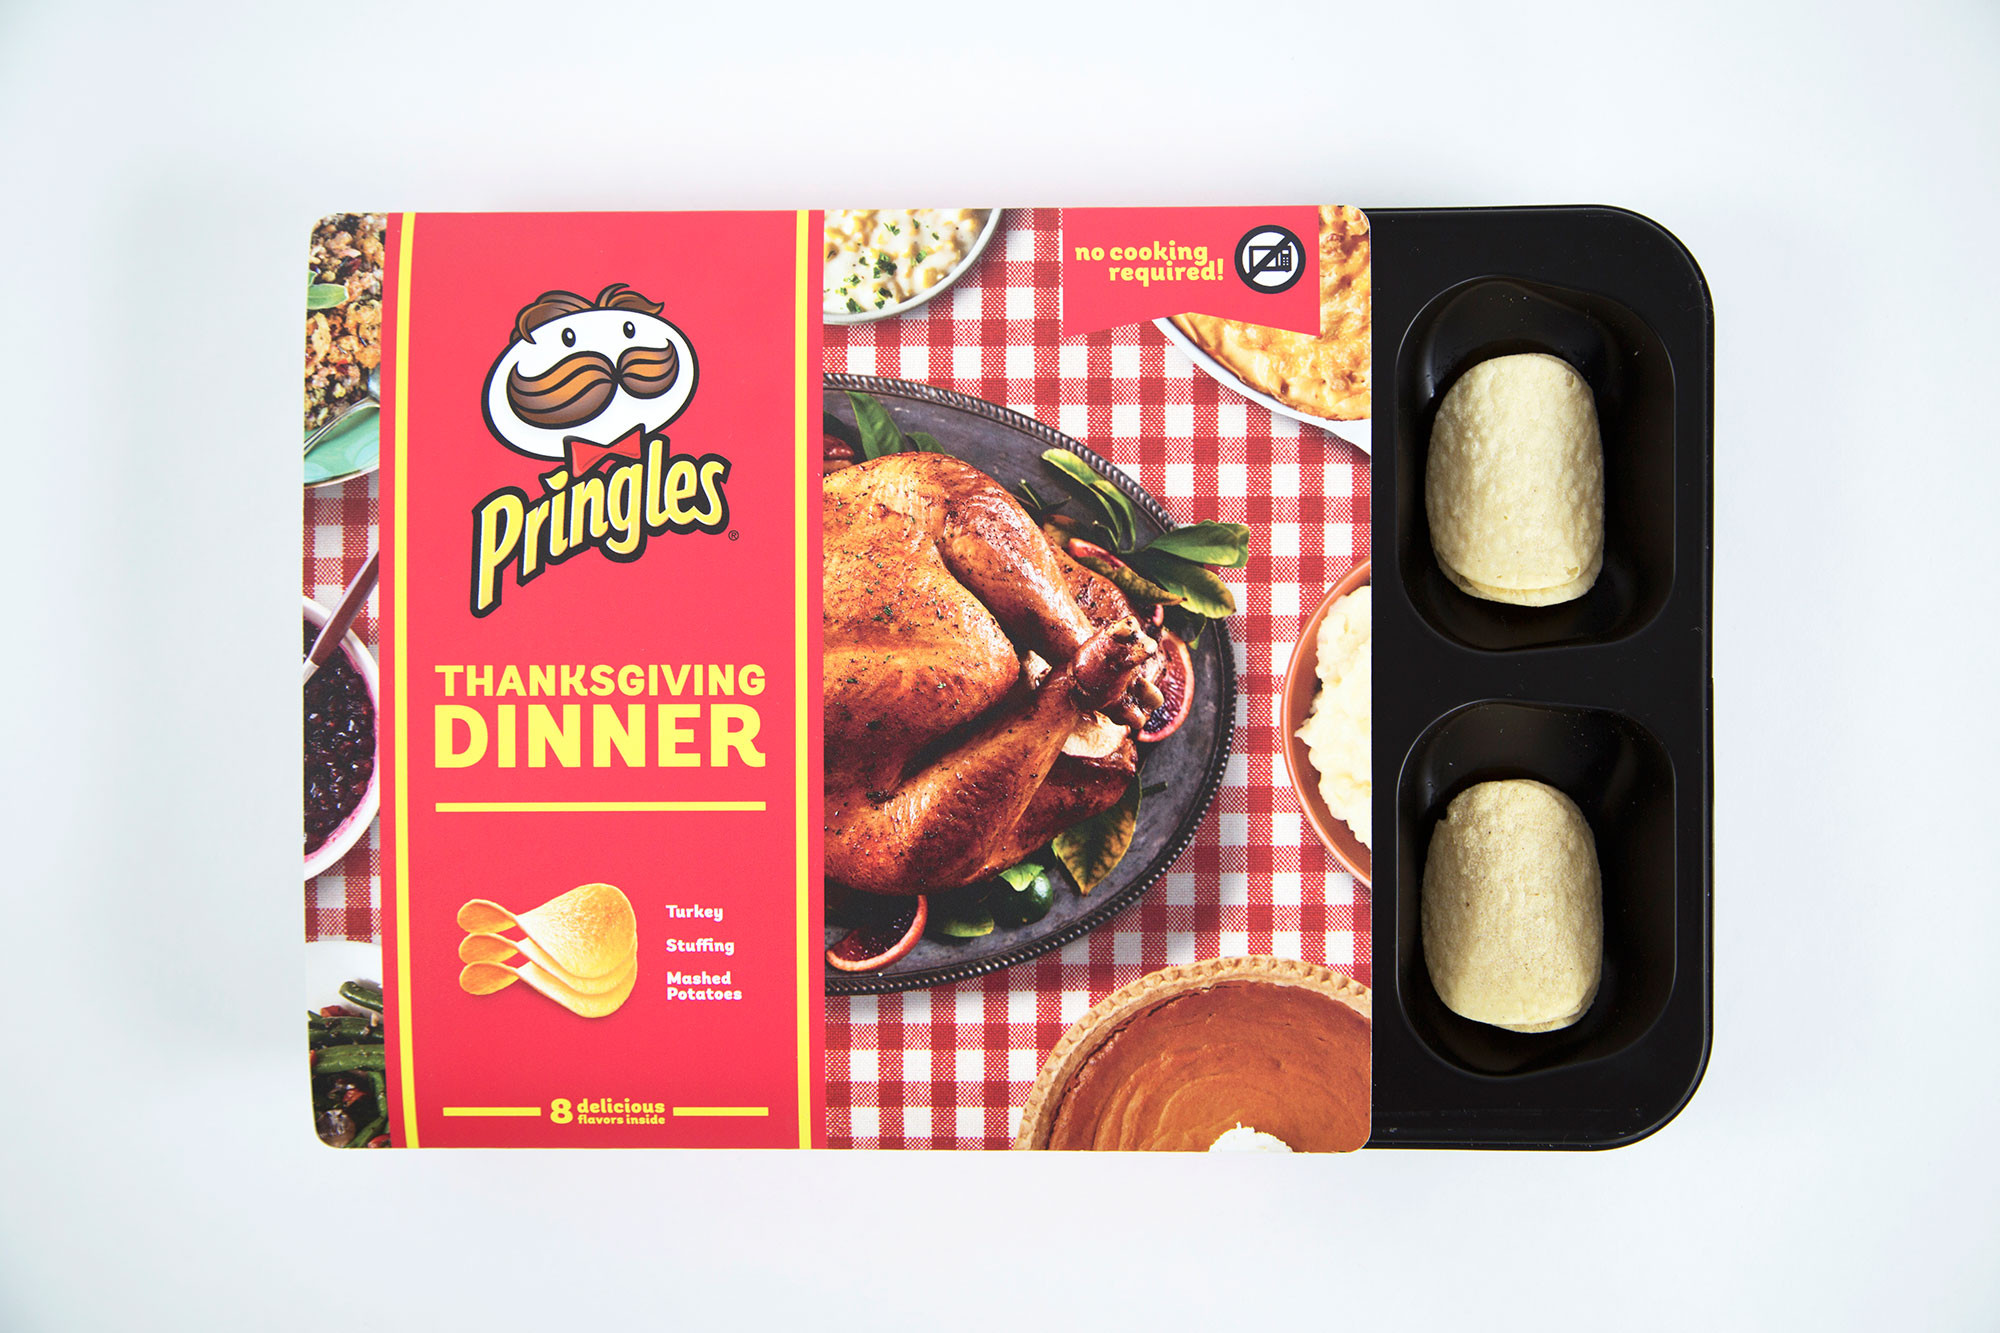 Thanksgiving Dinner Pringles  Pringles Unveils Thanksgiving Flavors for the First Time